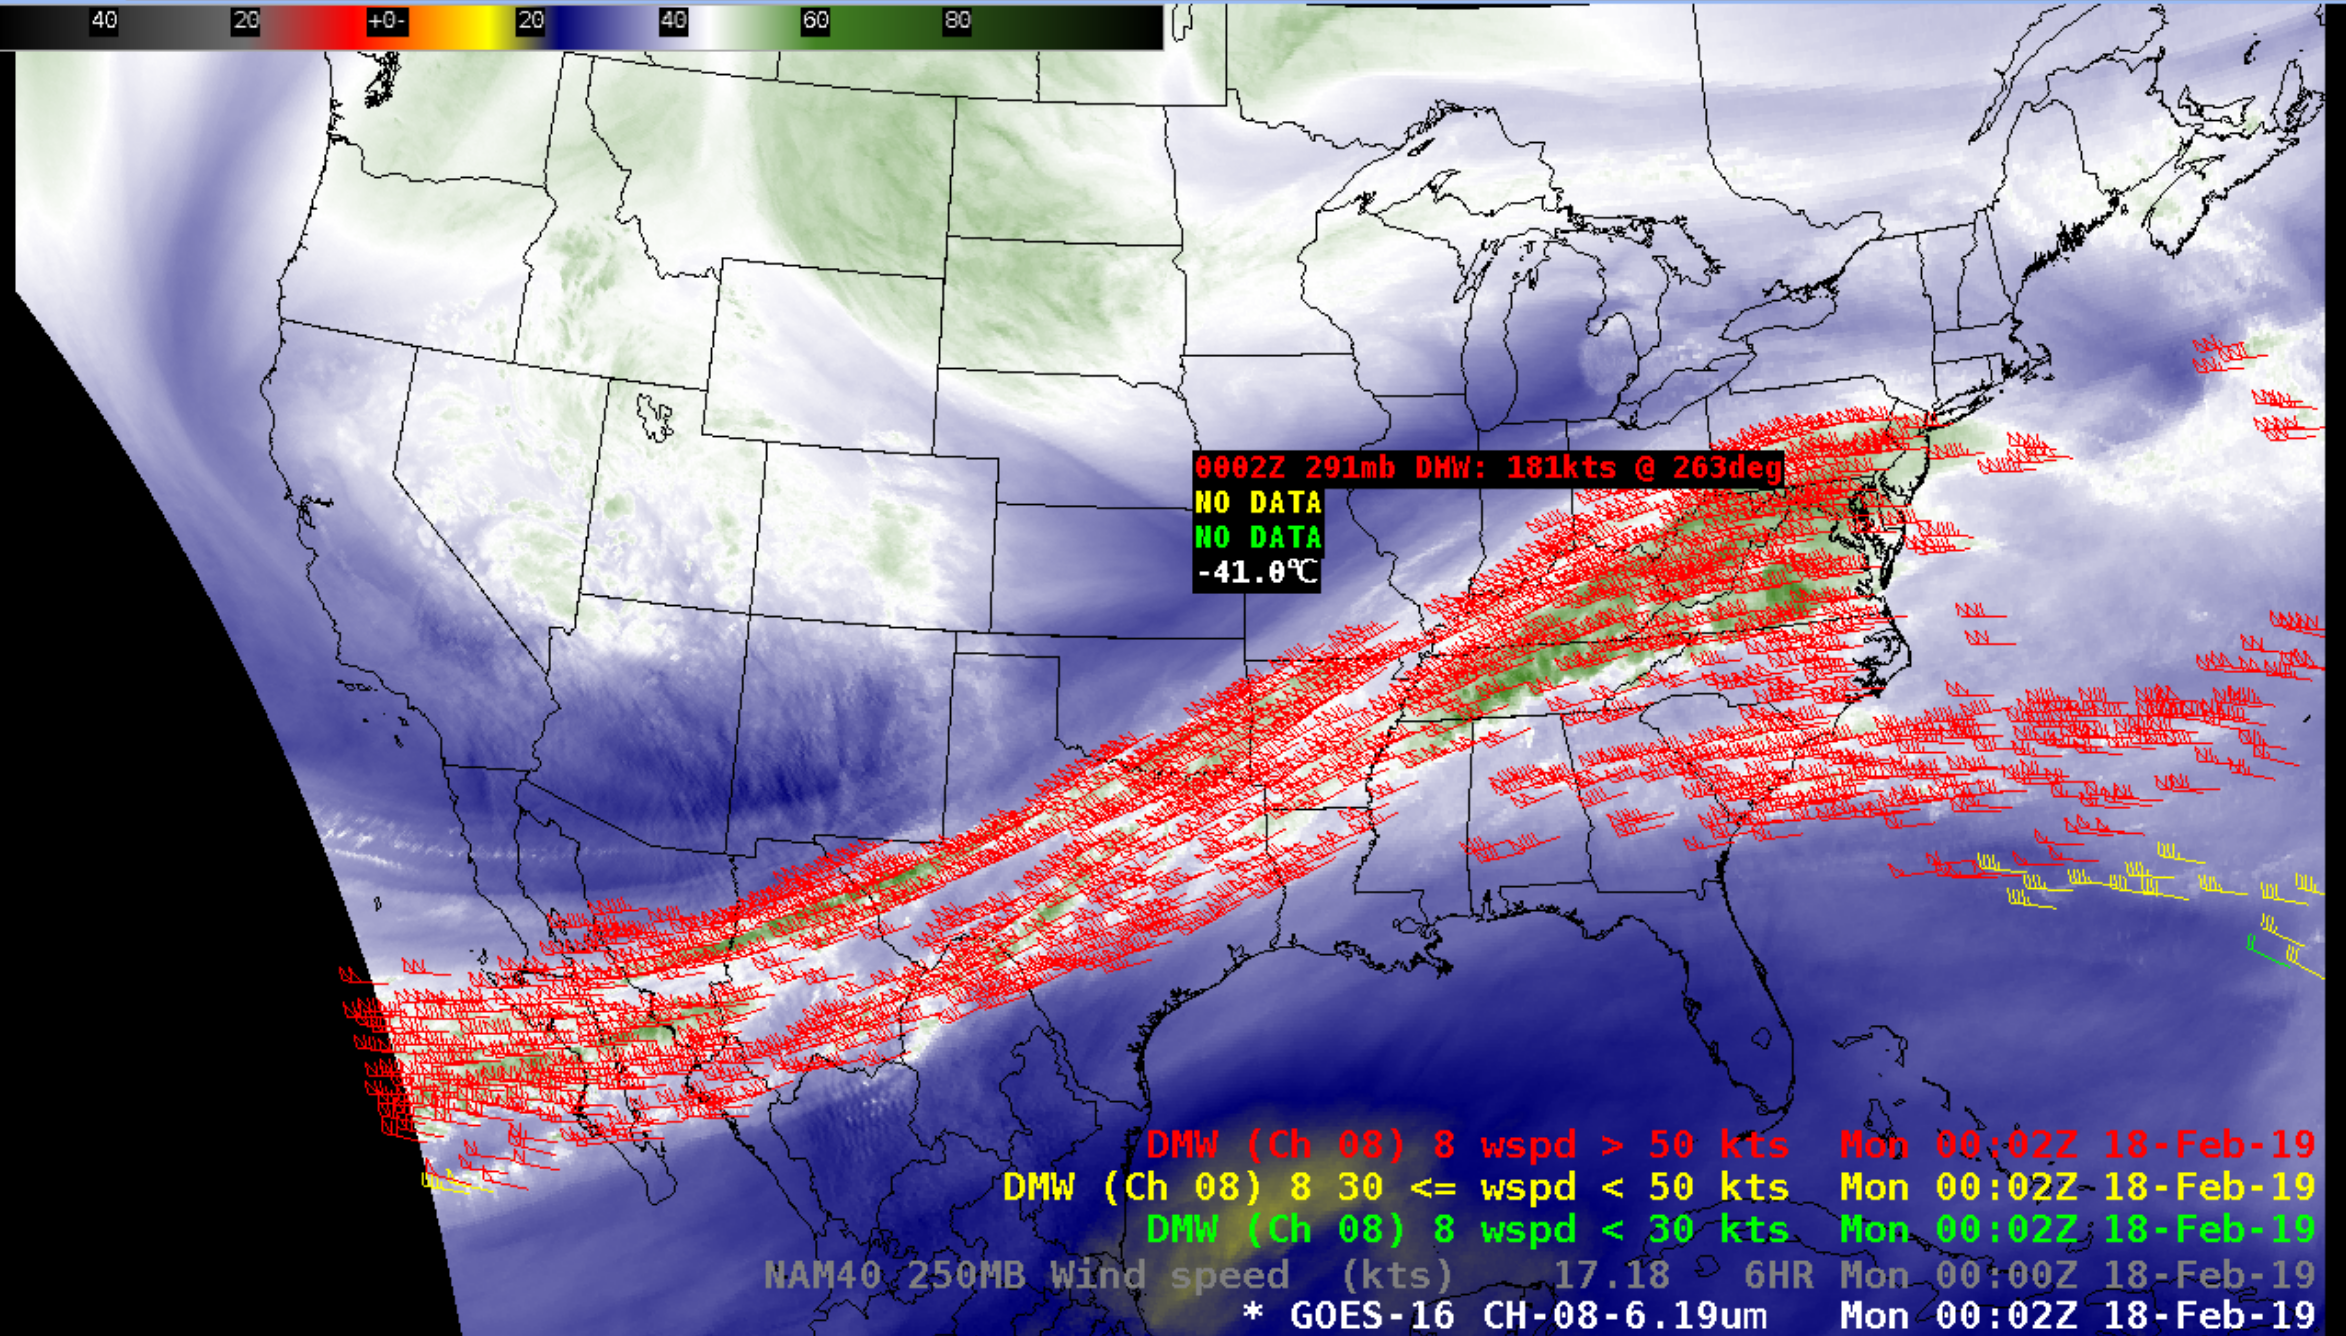 GOES-16 Upper-level Water Vapor (6.2 µm) image, with plots of Derived Motion Winds at 0002 UTC [click to enlarge]